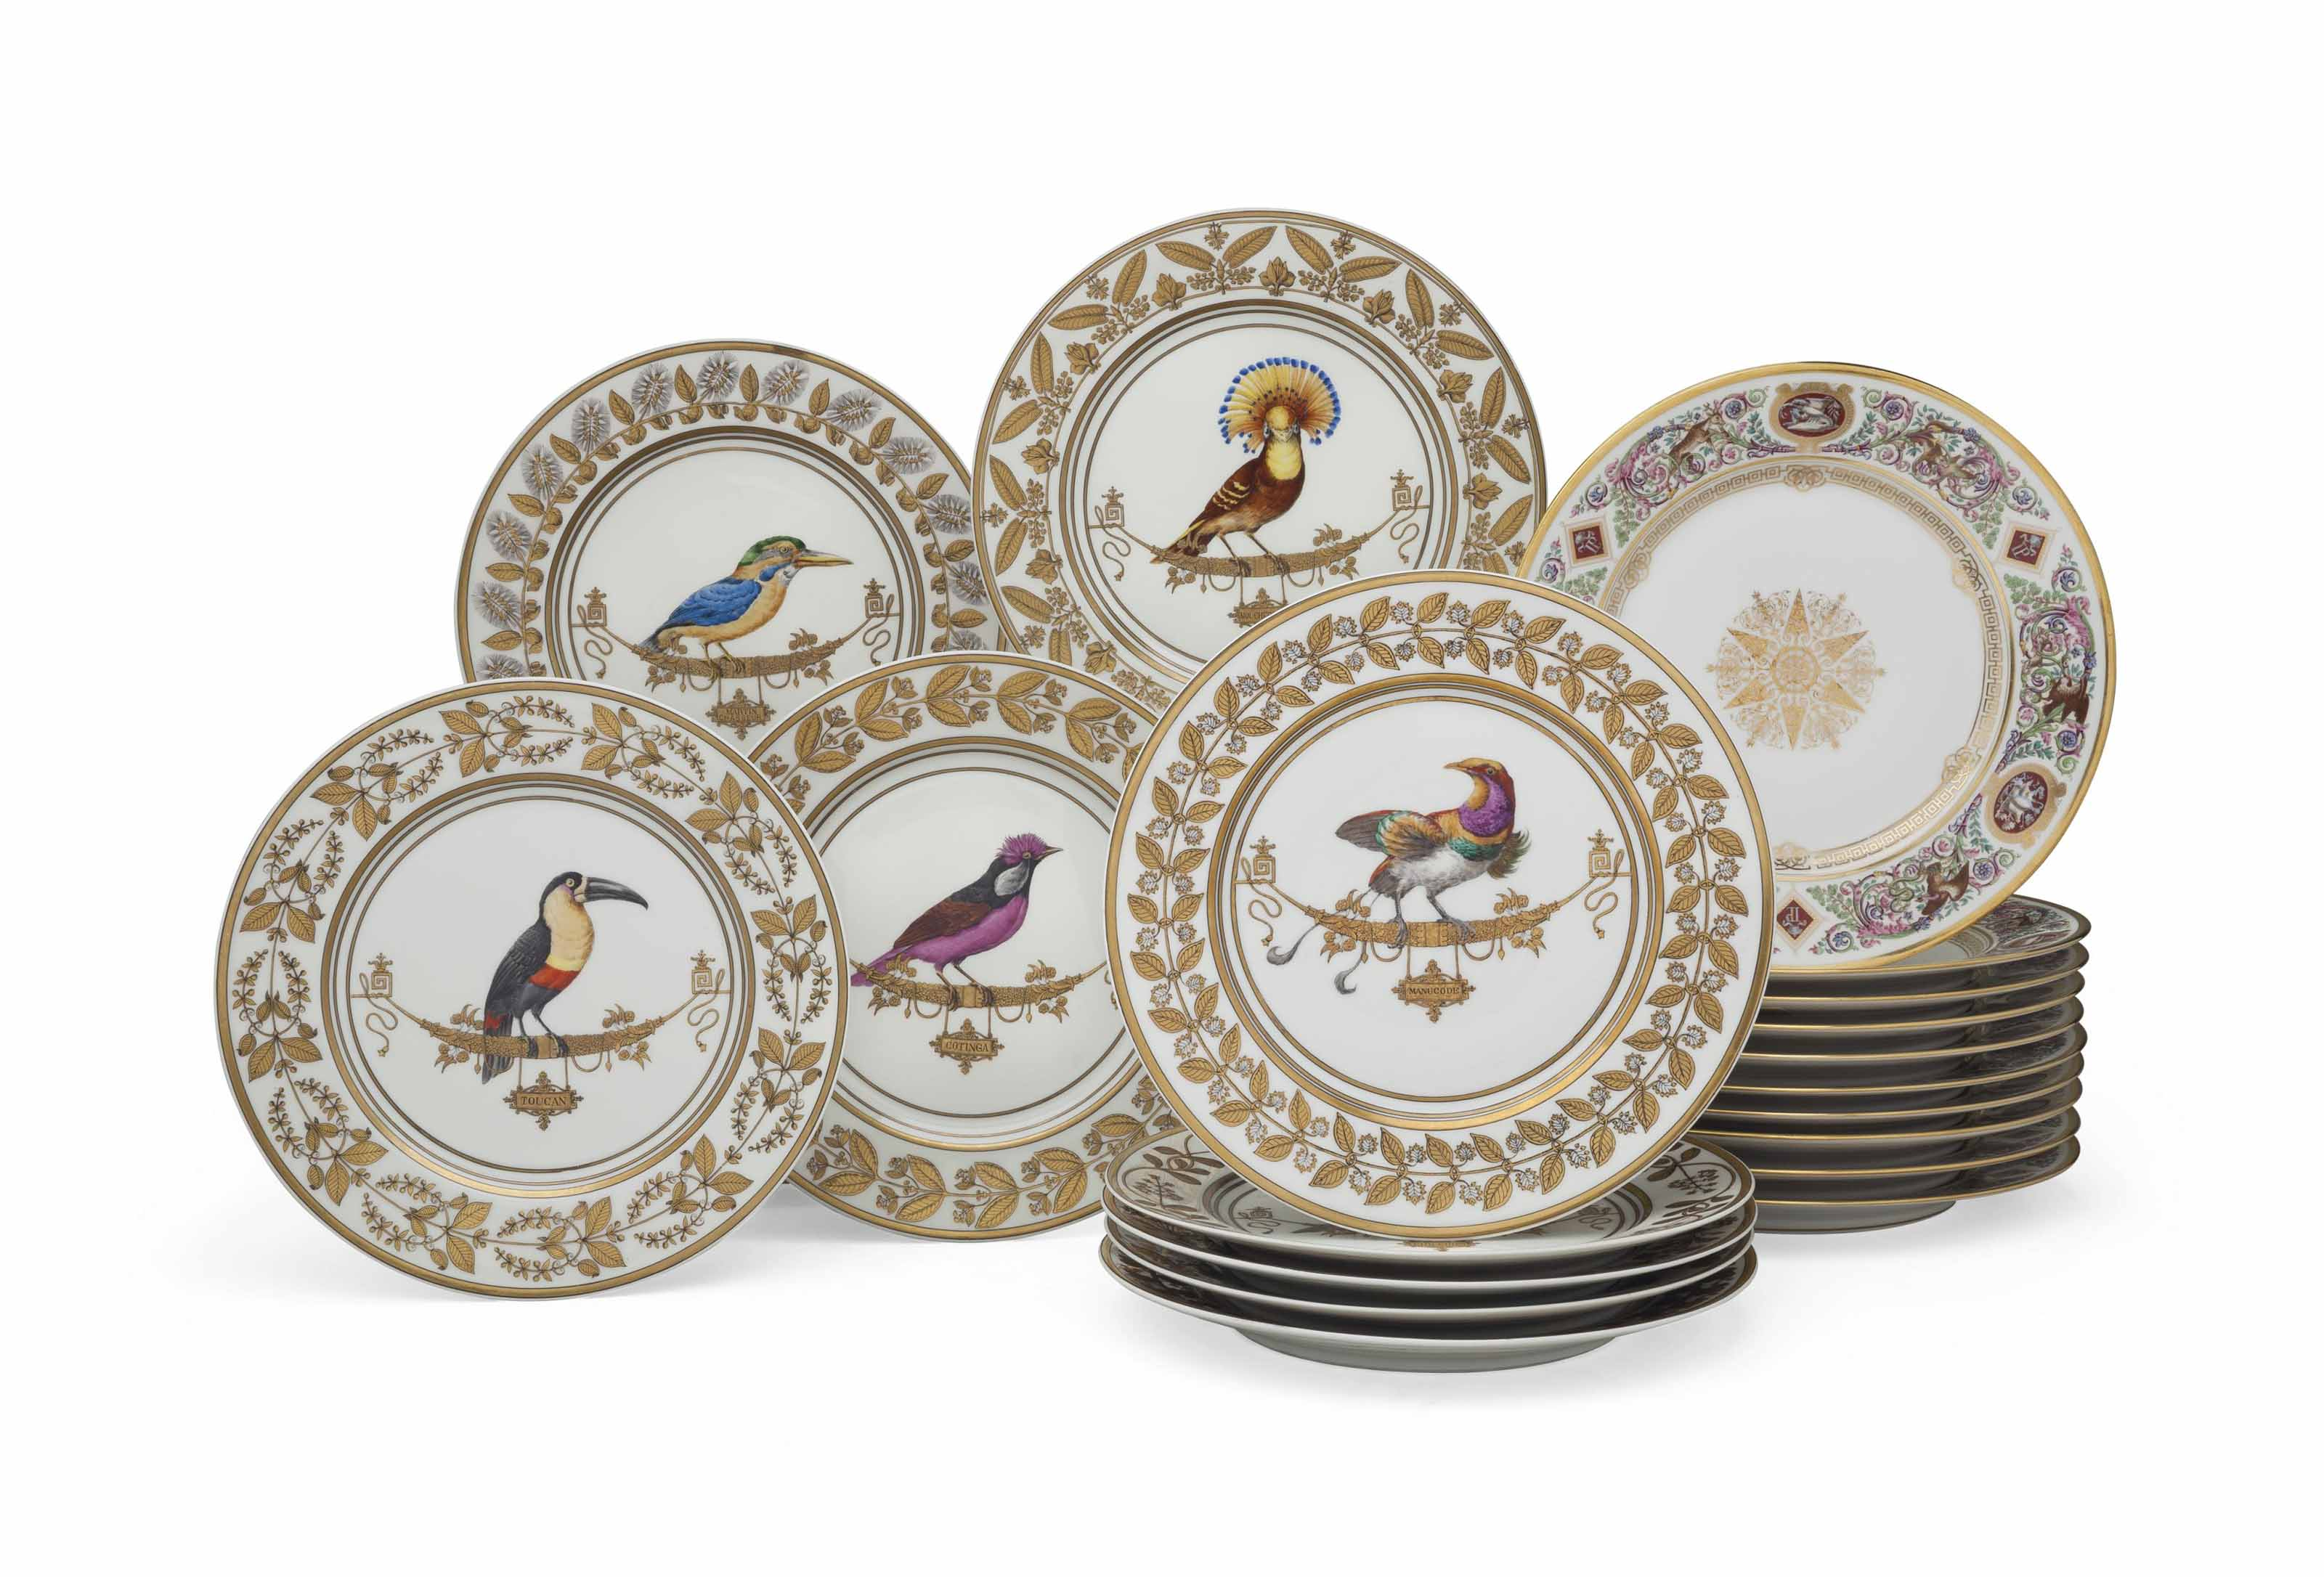 THIRTY LIMOGES PORCELAIN PLATES